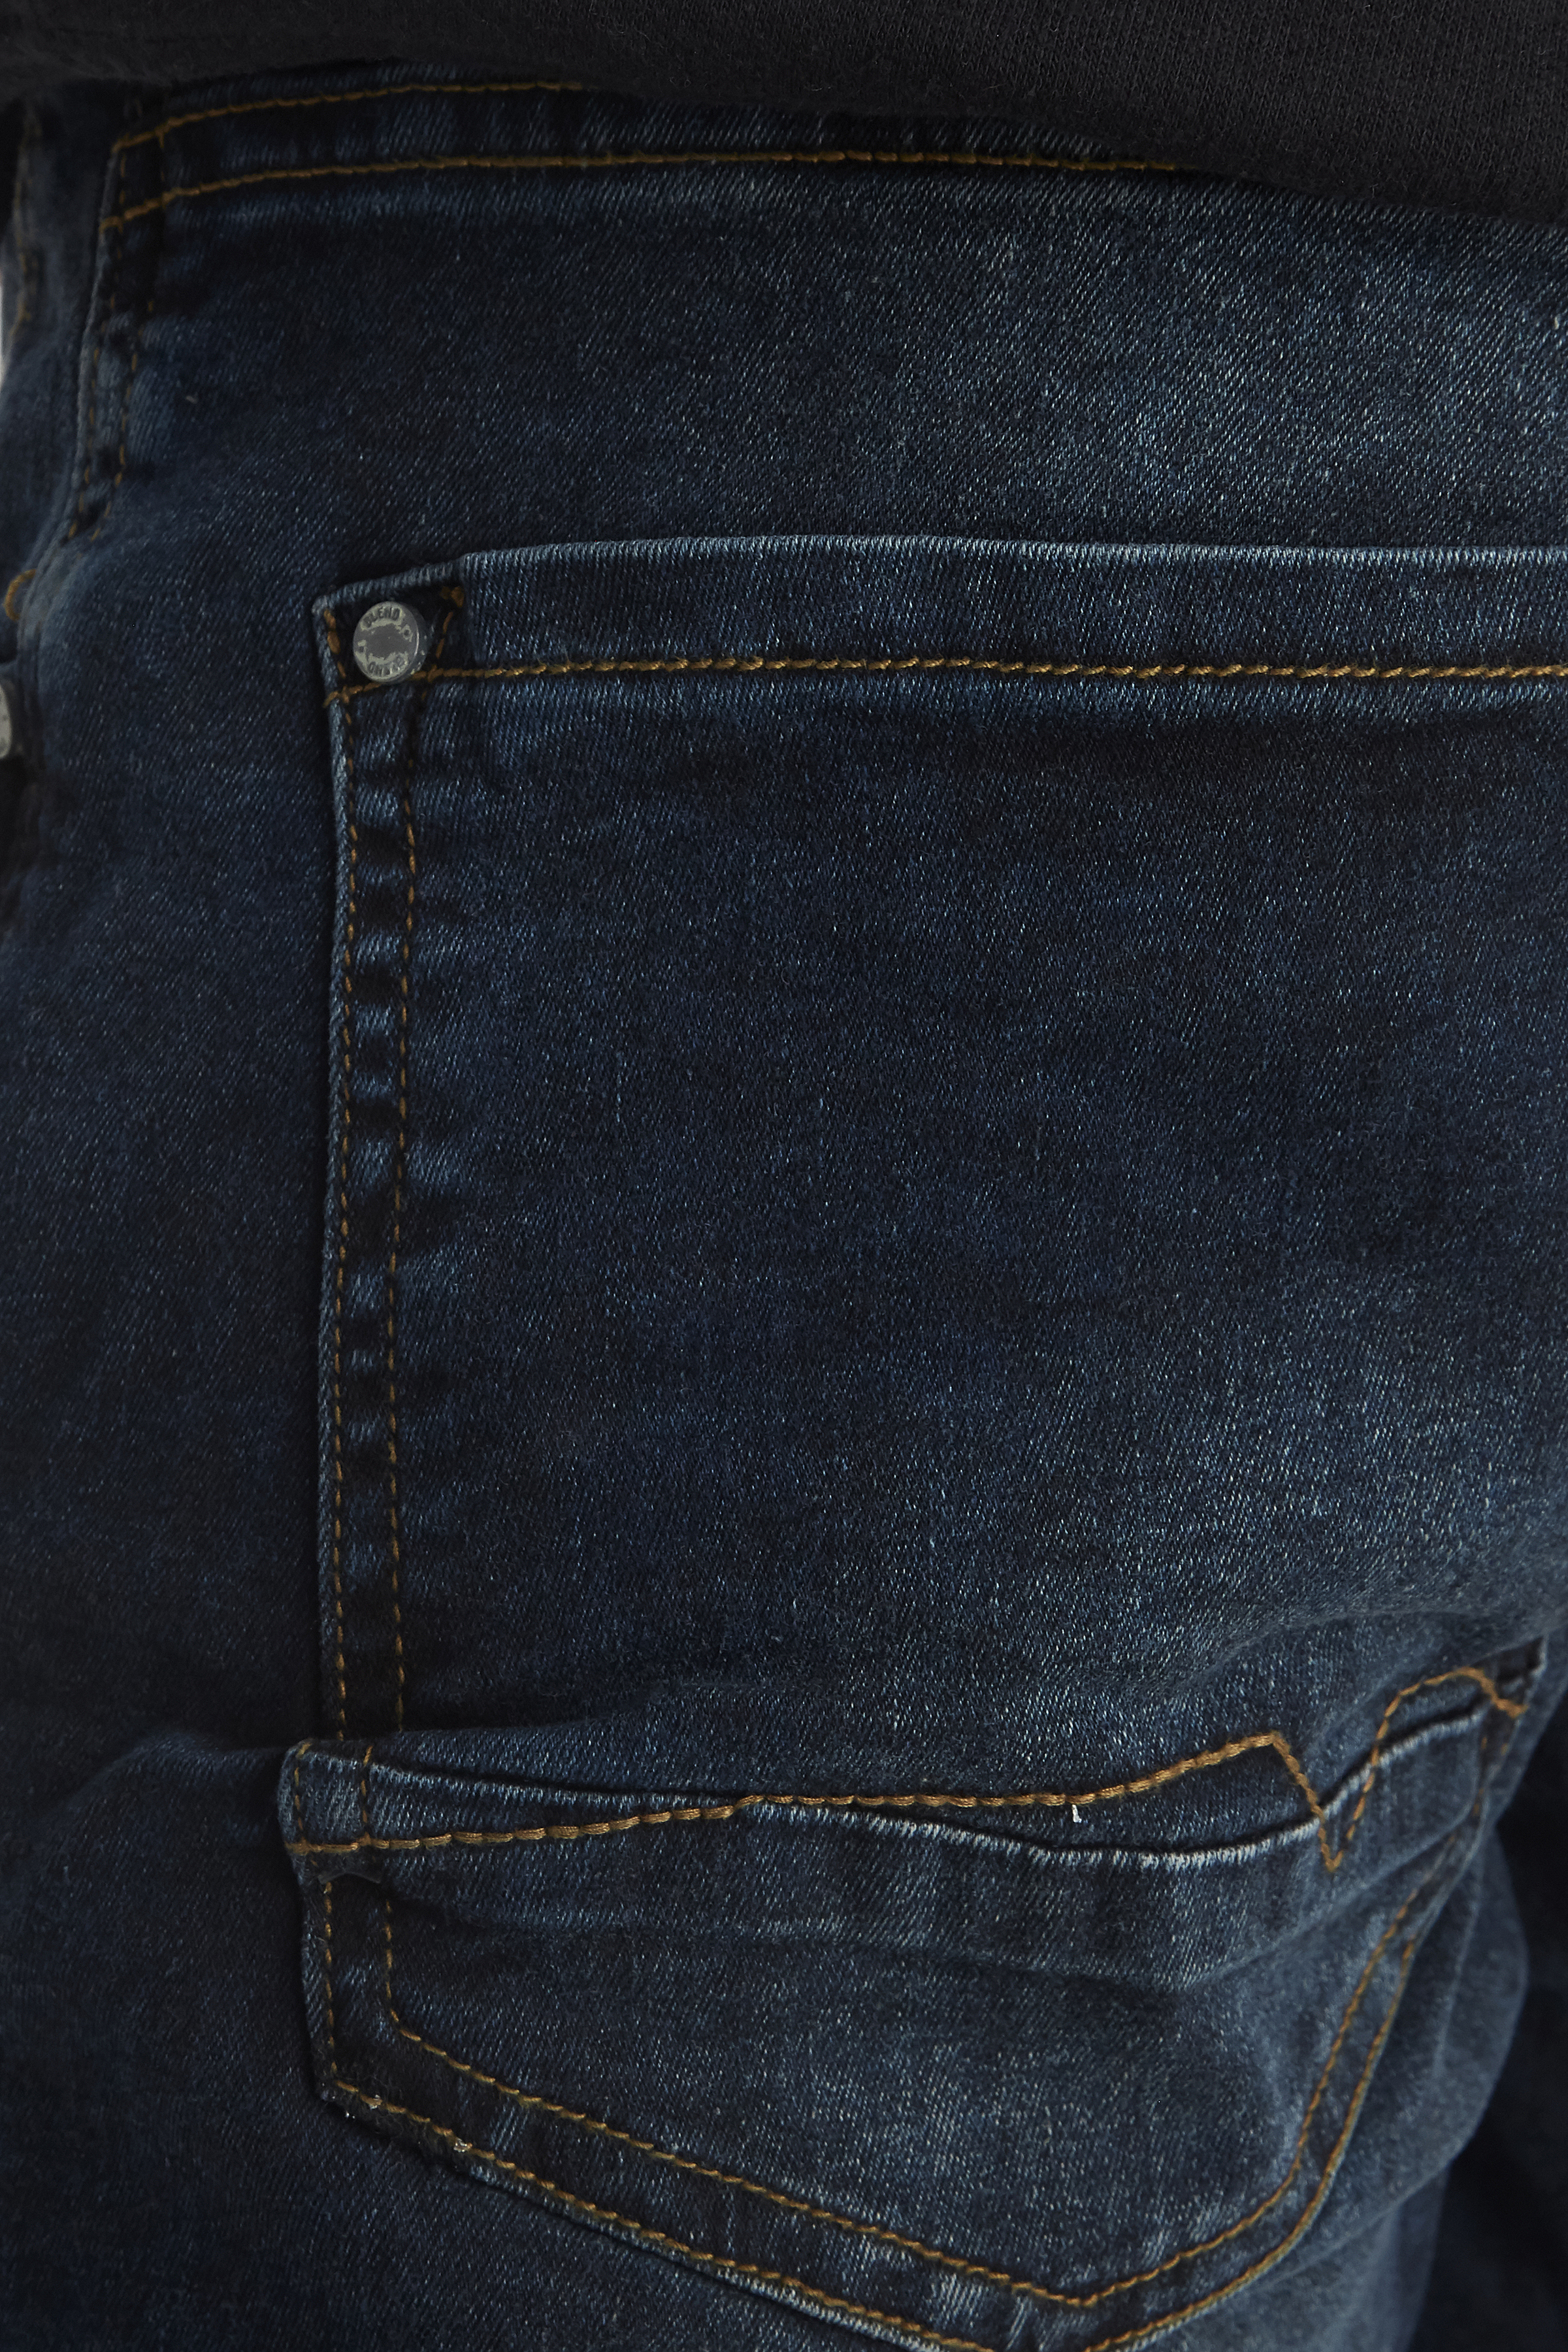 Denim Middle blue Jet jeans fra Blend He – Køb Denim Middle blue Jet jeans fra str. 28-40 her